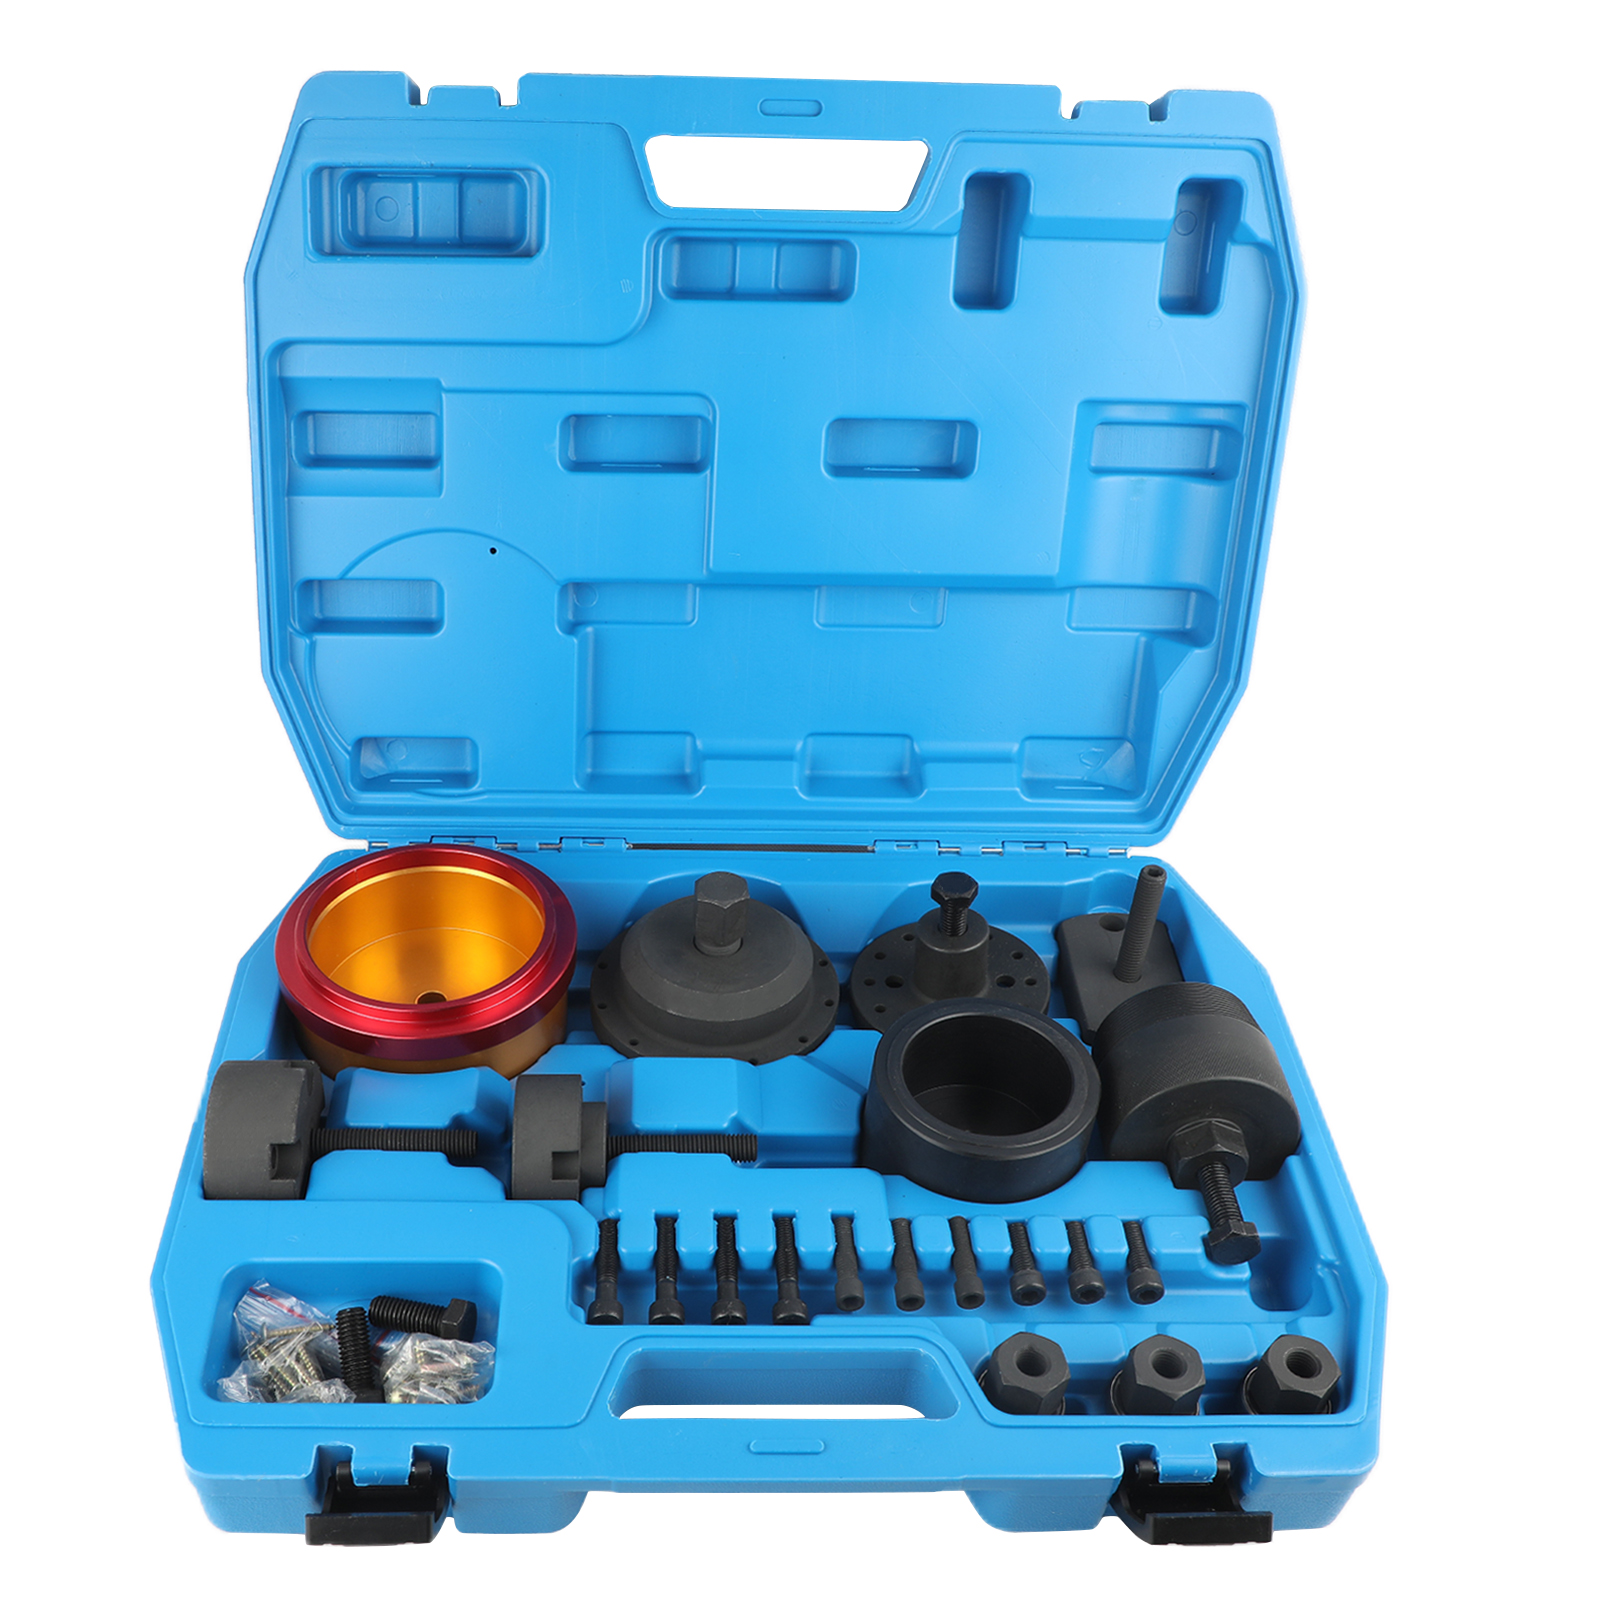 Car Crankshaft Seal Removal Tool And Rear Oil Seal Remover &Installer Tool Kit For BMW N40 N42 N45 N46 N46T N52 N53 N54 N55